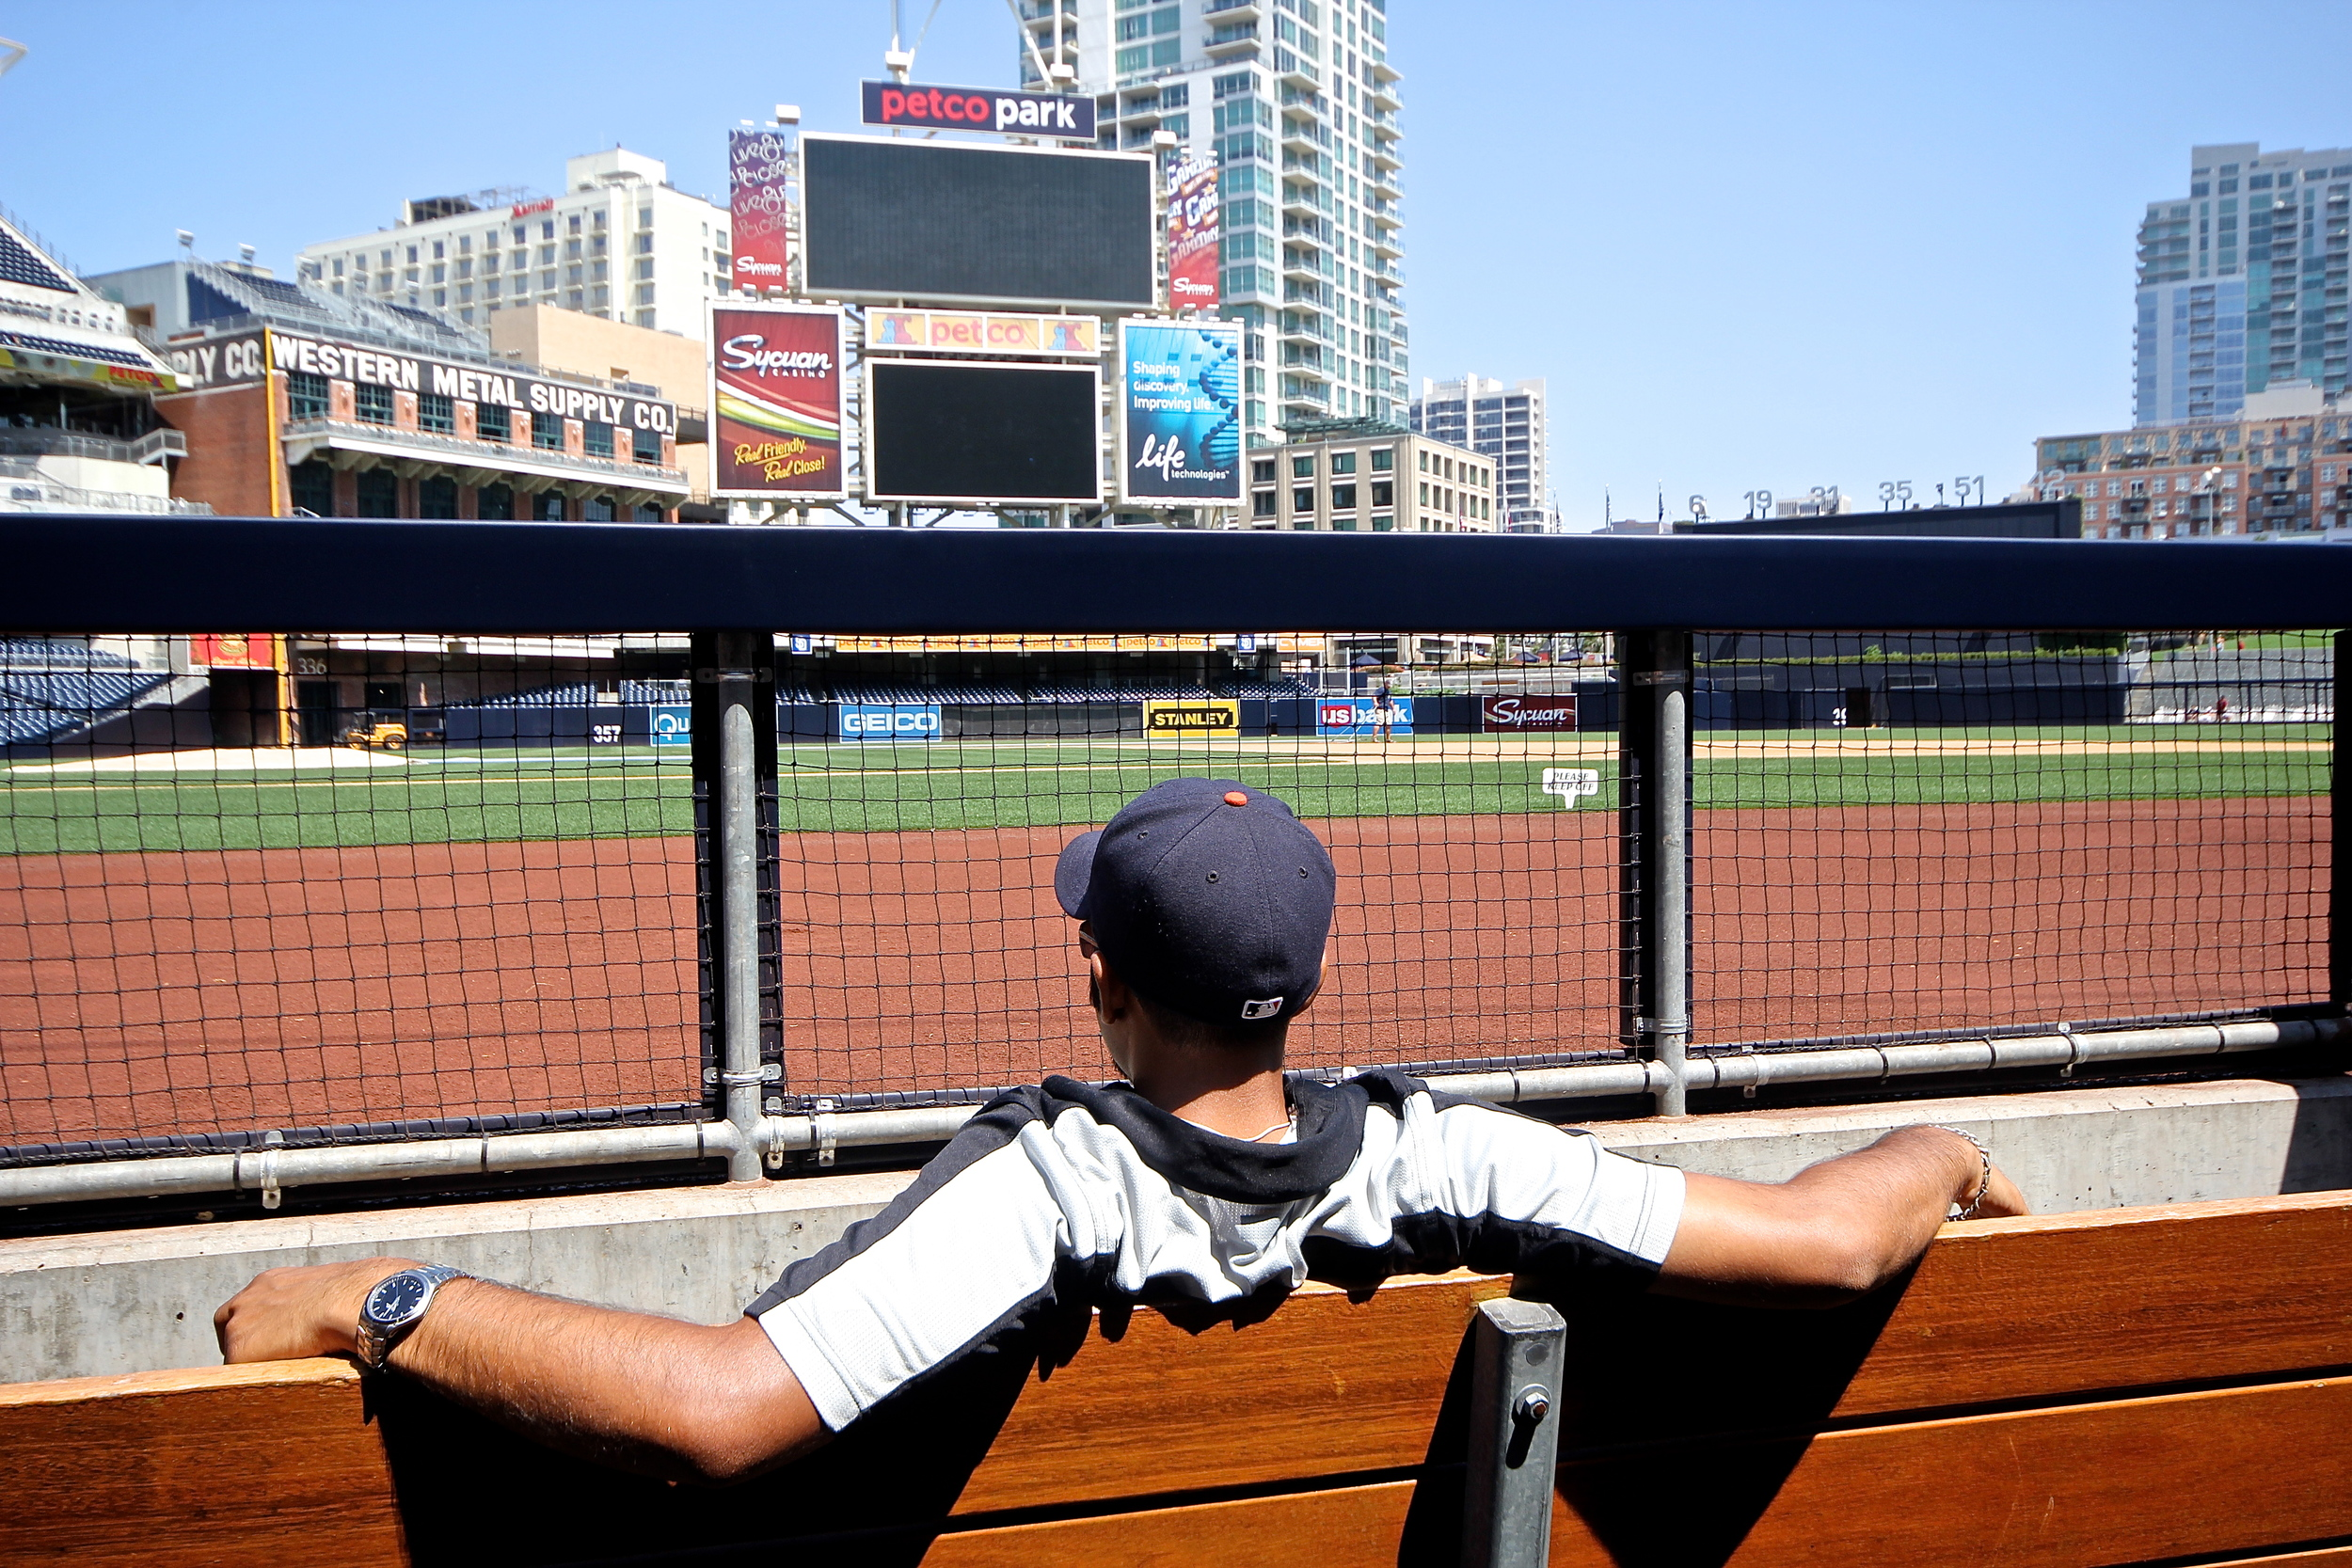 Hanging out in the dugout